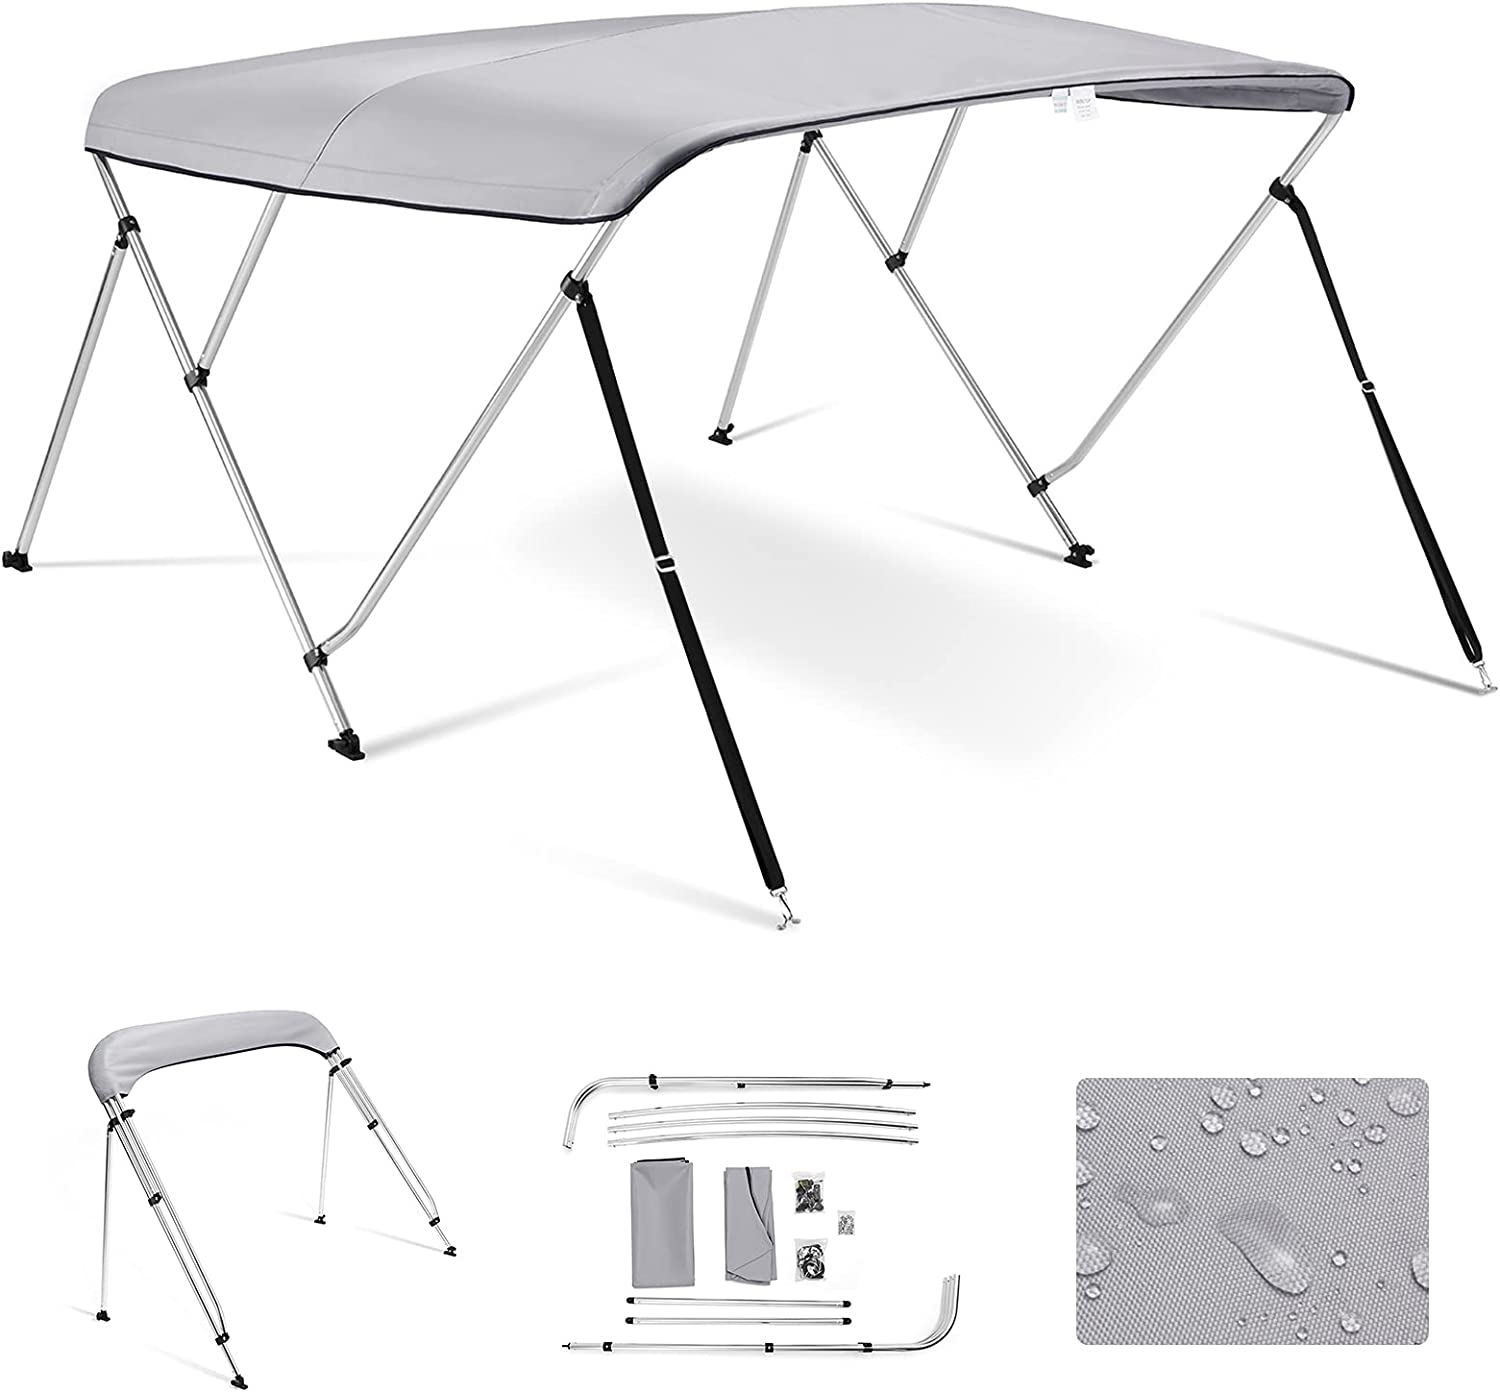 Kohree 3 Bow Indefinitely Bimini Top Boat with Su Canopy Max 44% OFF Stainless Cover Rear